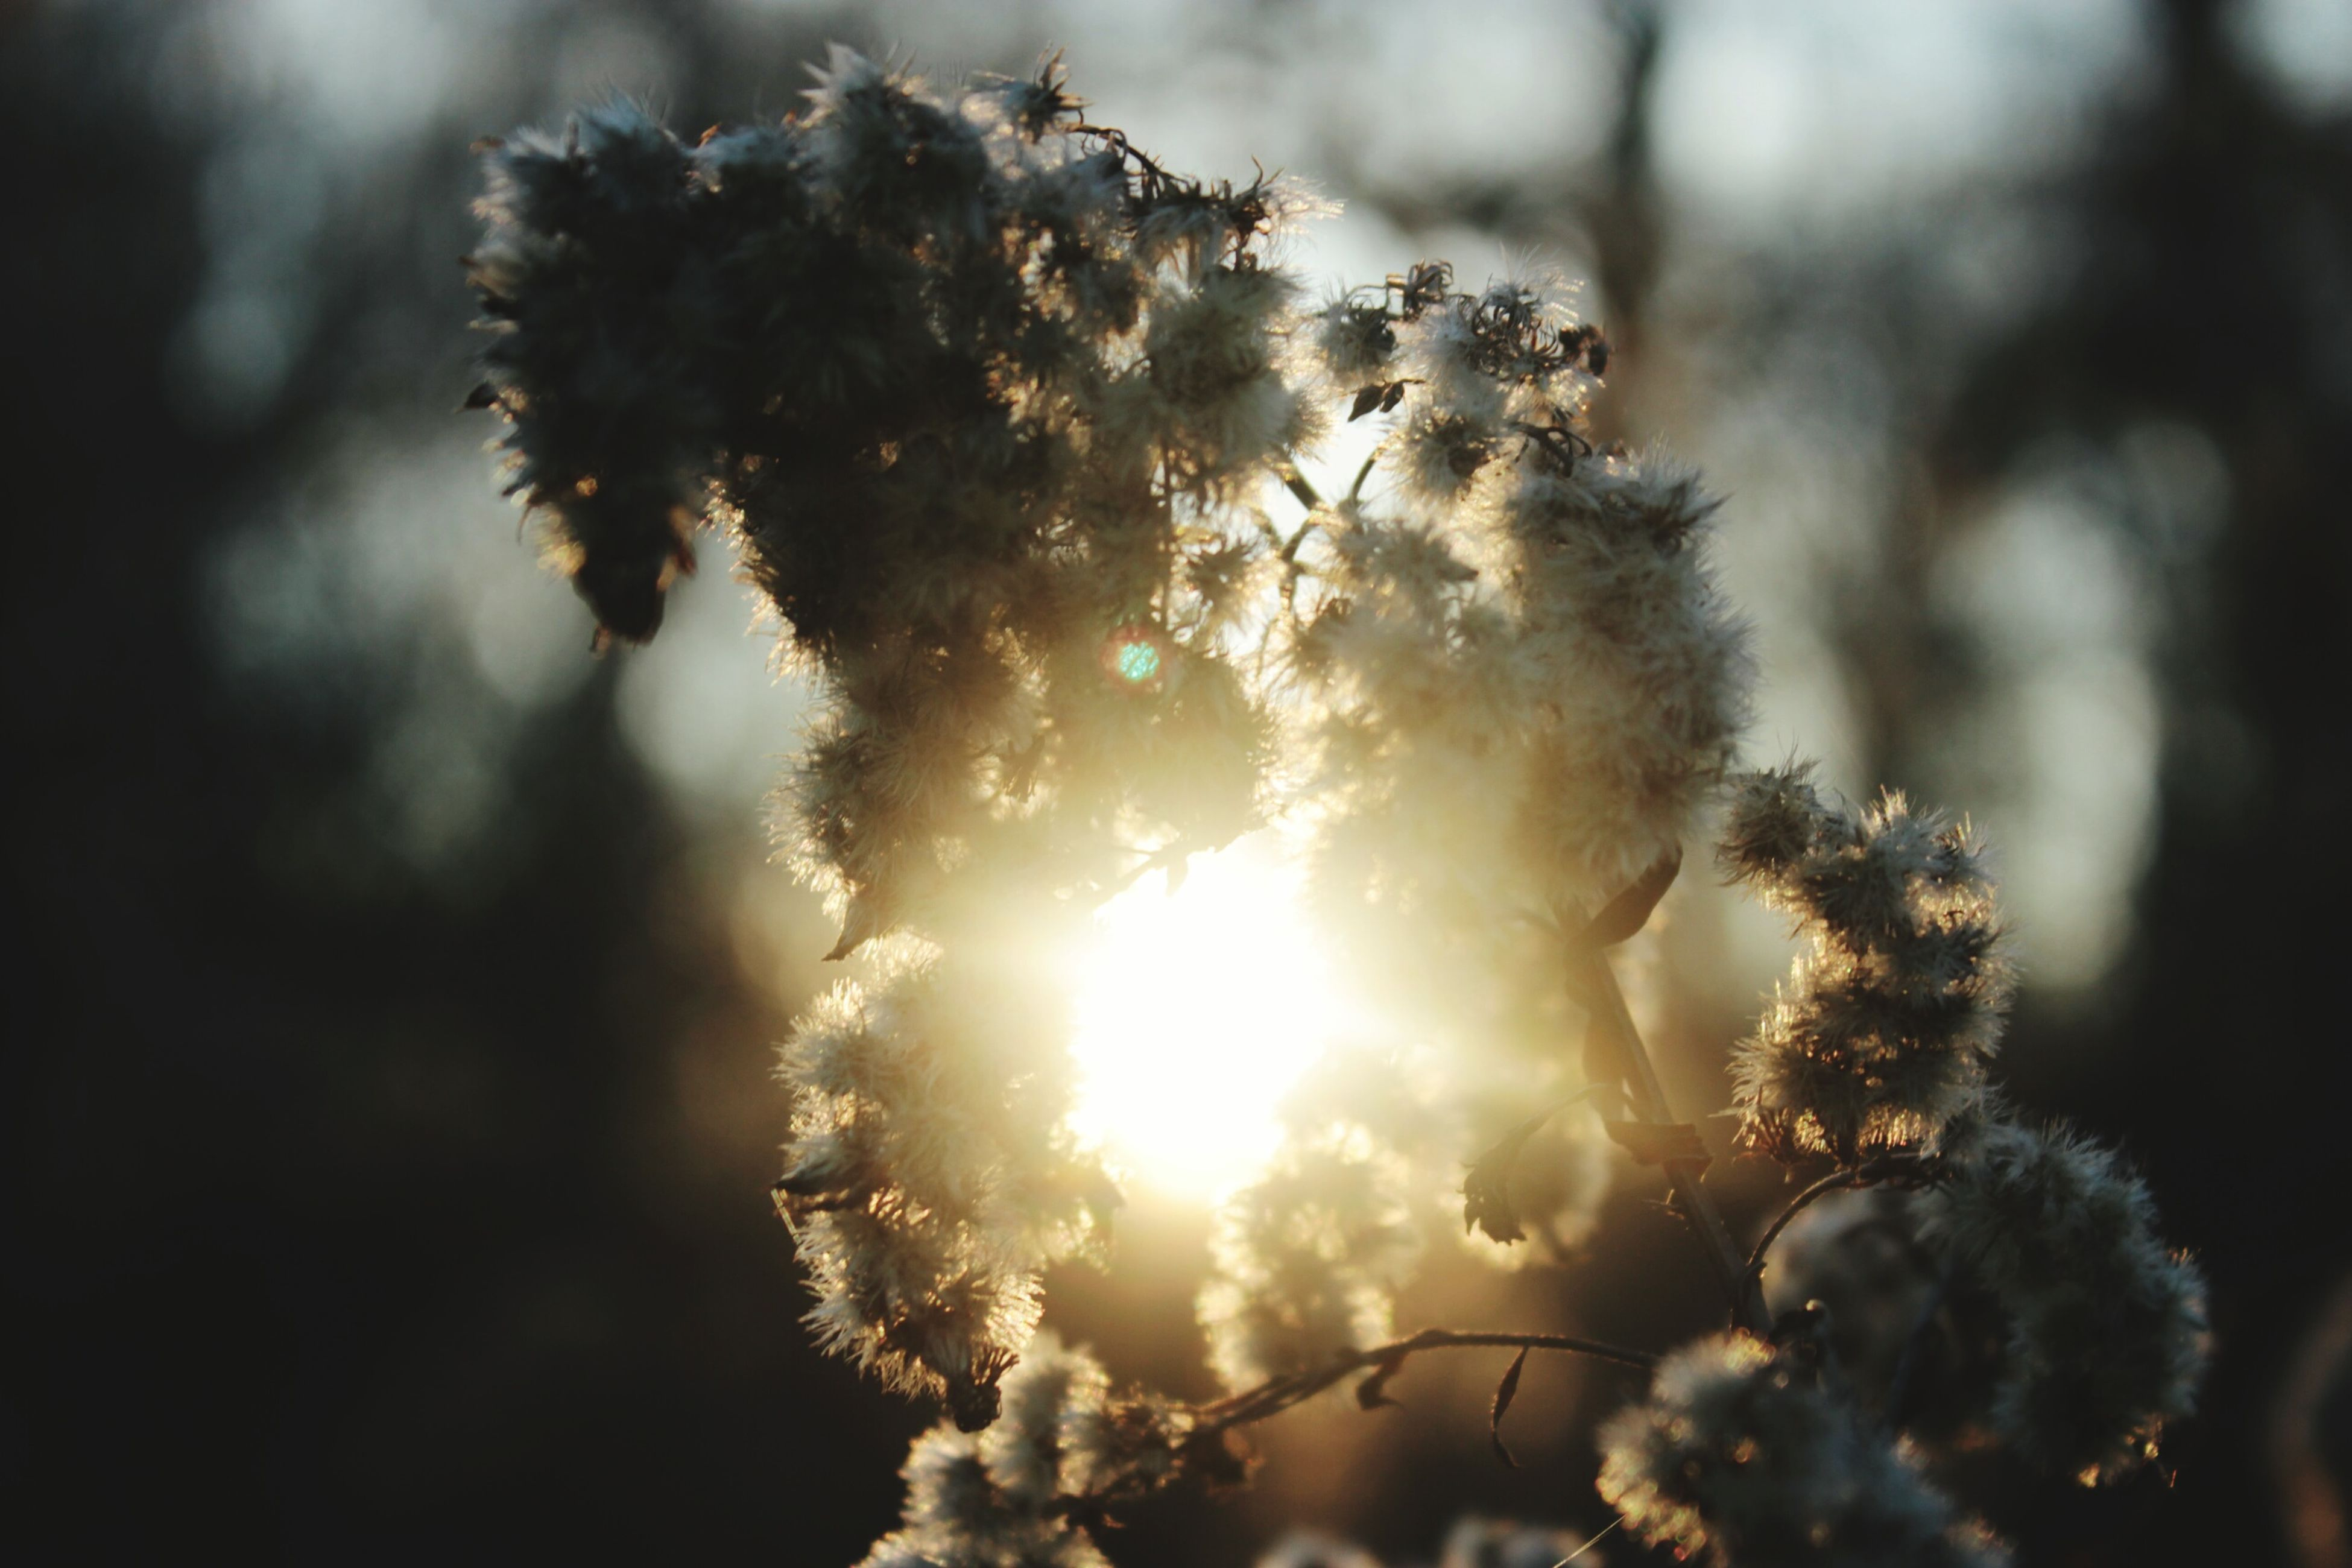 focus on foreground, close-up, nature, flower, sun, growth, beauty in nature, sunlight, fragility, plant, outdoors, lens flare, selective focus, tranquility, tree, no people, sunbeam, day, twig, back lit